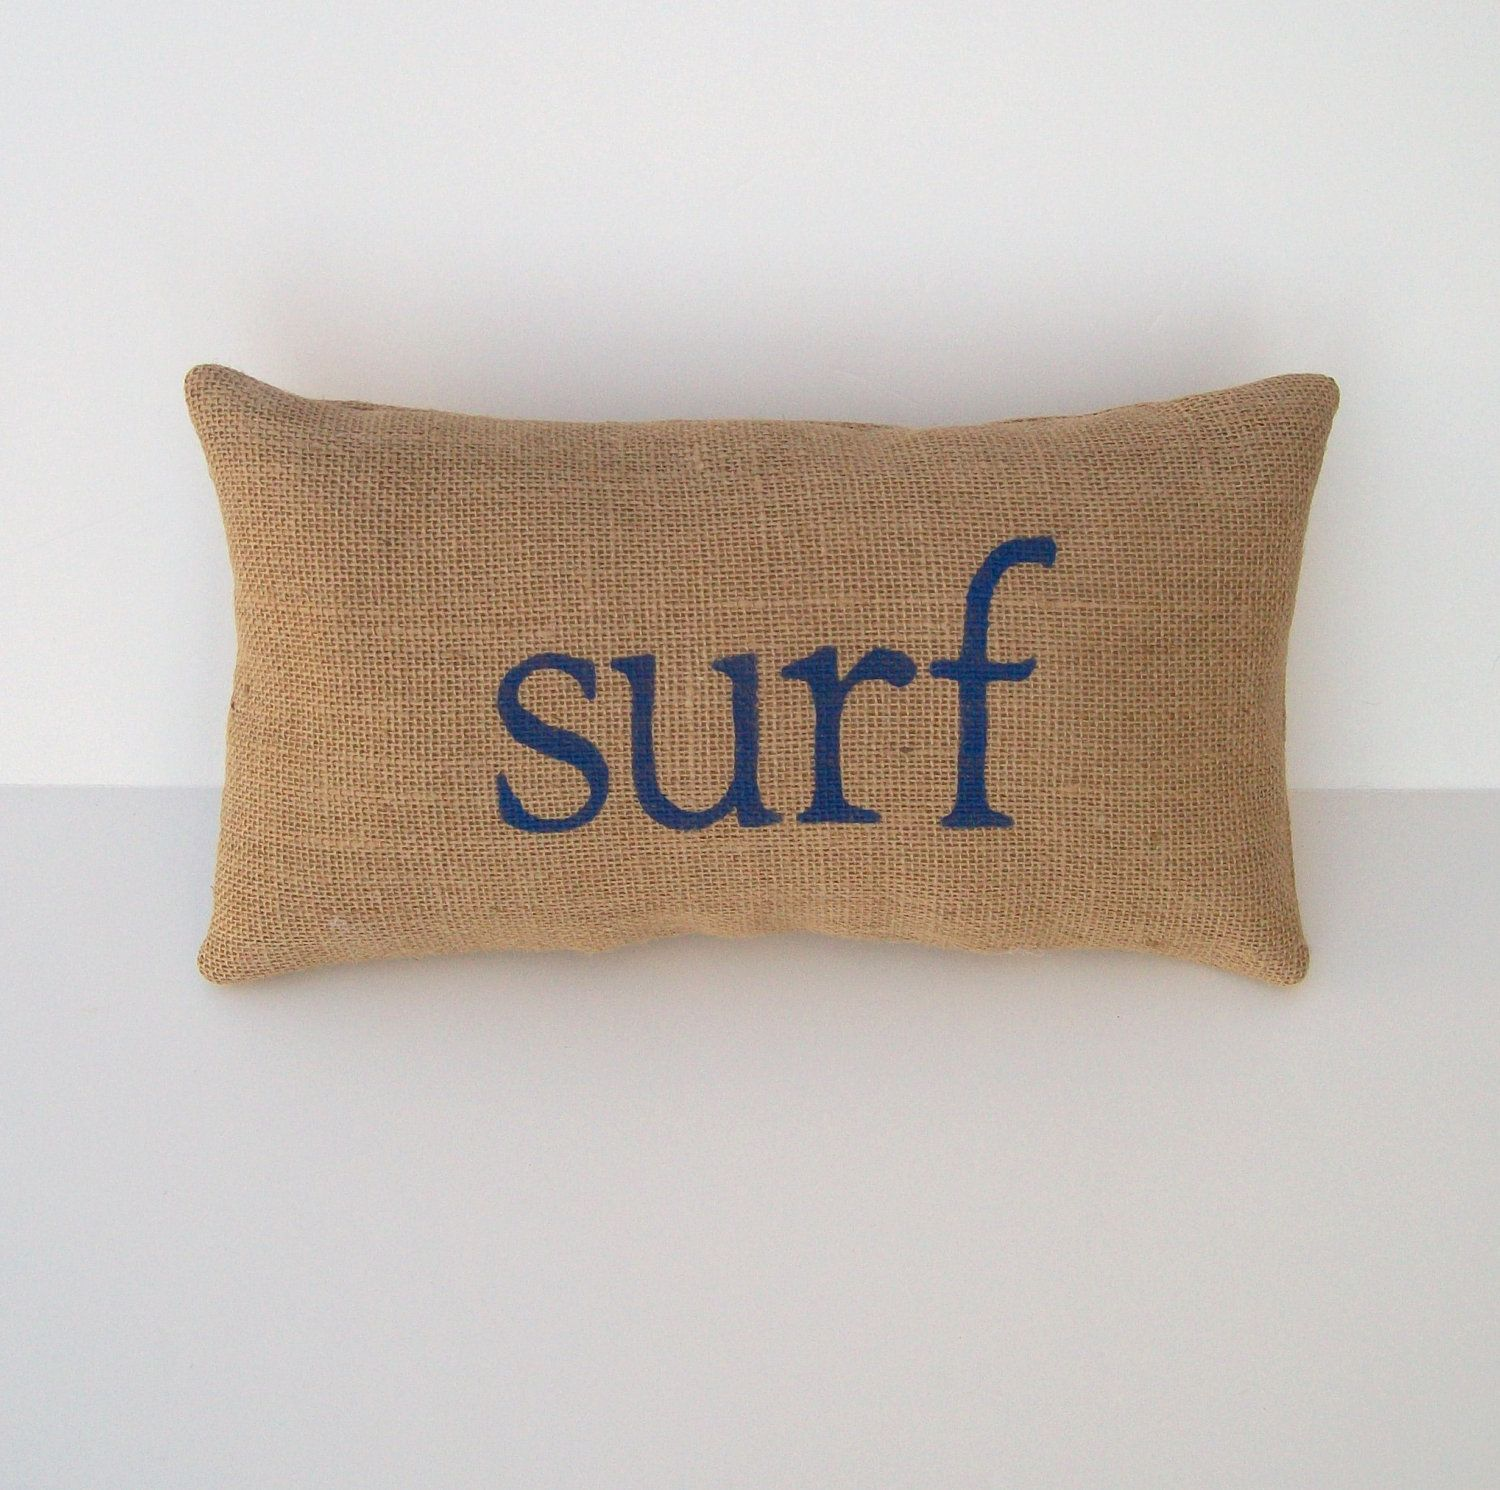 decorative burlap pillow, blue SURF word pillow, home and beach ...